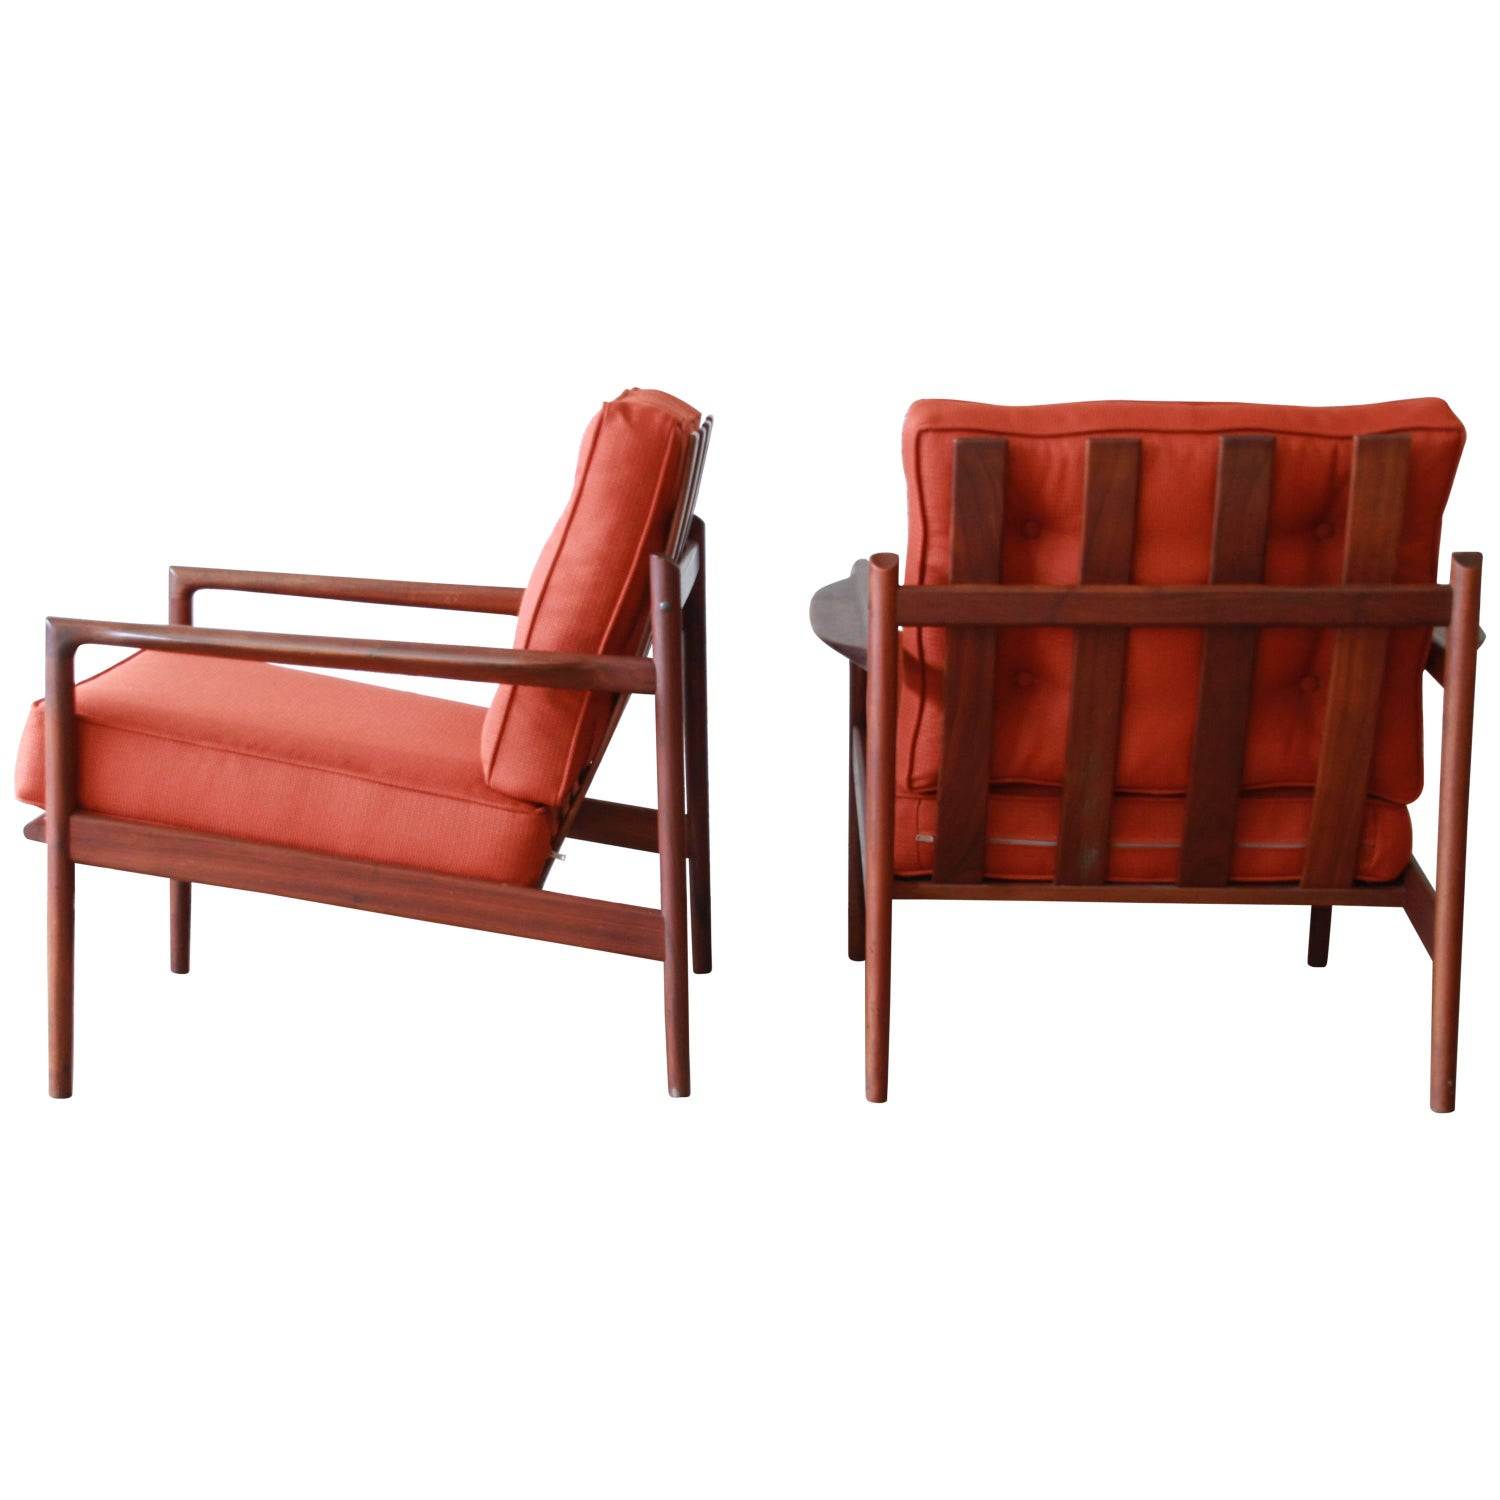 This sculptural pair of lounge chairs by ib kofod larsen is no longer - Ib Kofod Larsen For Selig Picket Back Lounge Chairs 1960s For Sale At 1stdibs